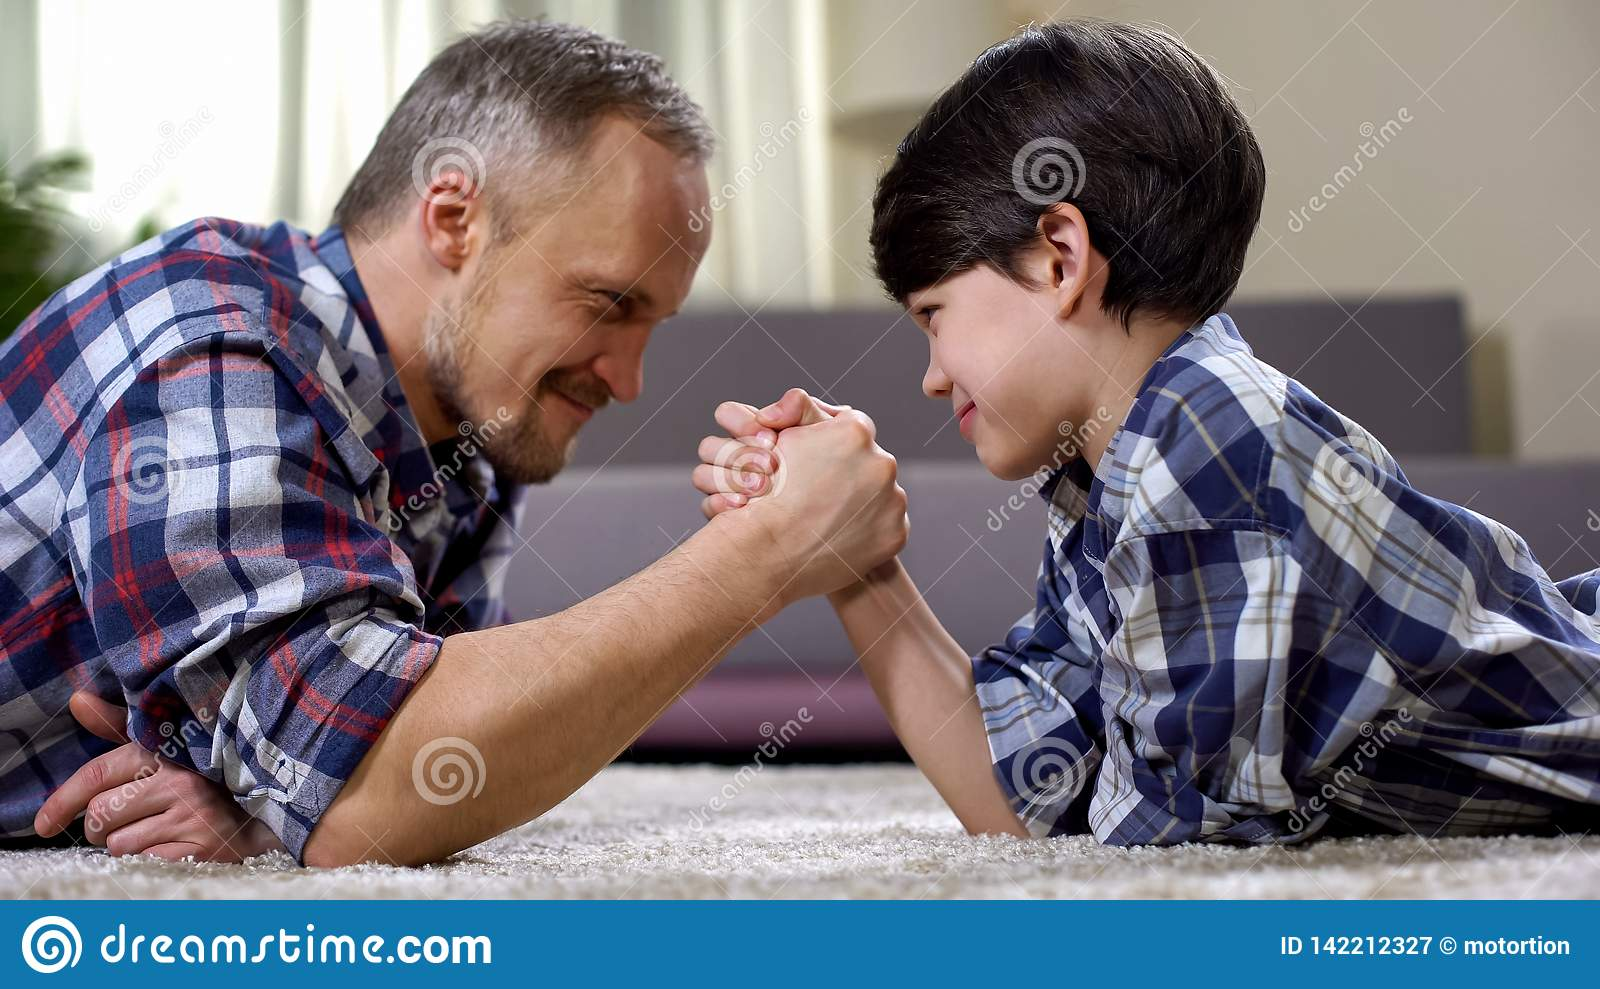 Loving father and kid arm wrestling on the floor, weekend leisure at home, fun